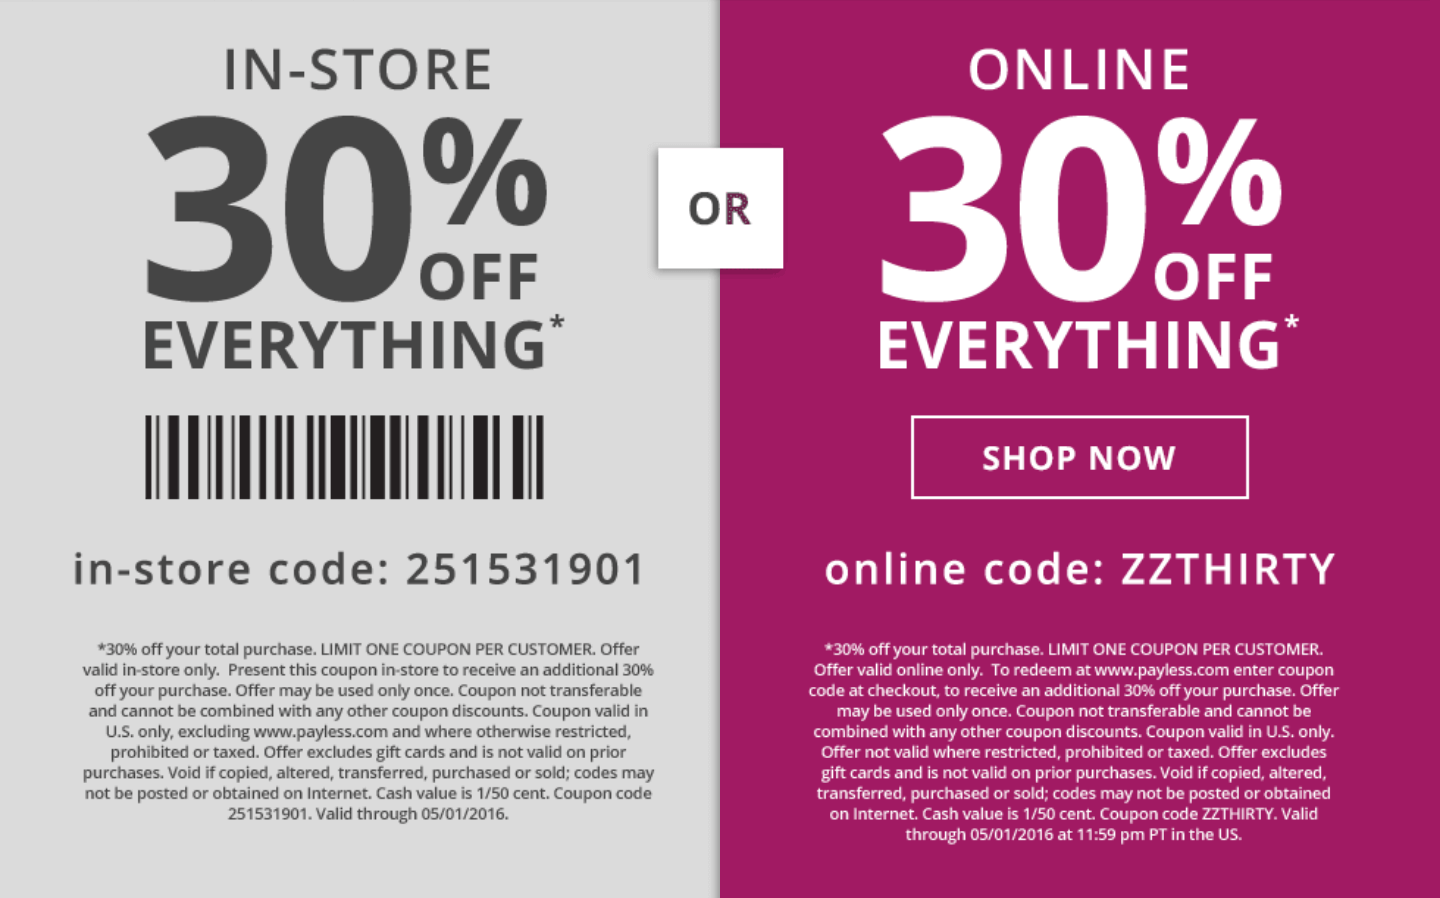 Payless Shoesource Coupon January 2017 30% off at Payless Shoesource, or online via promo code ZZTHIRTY